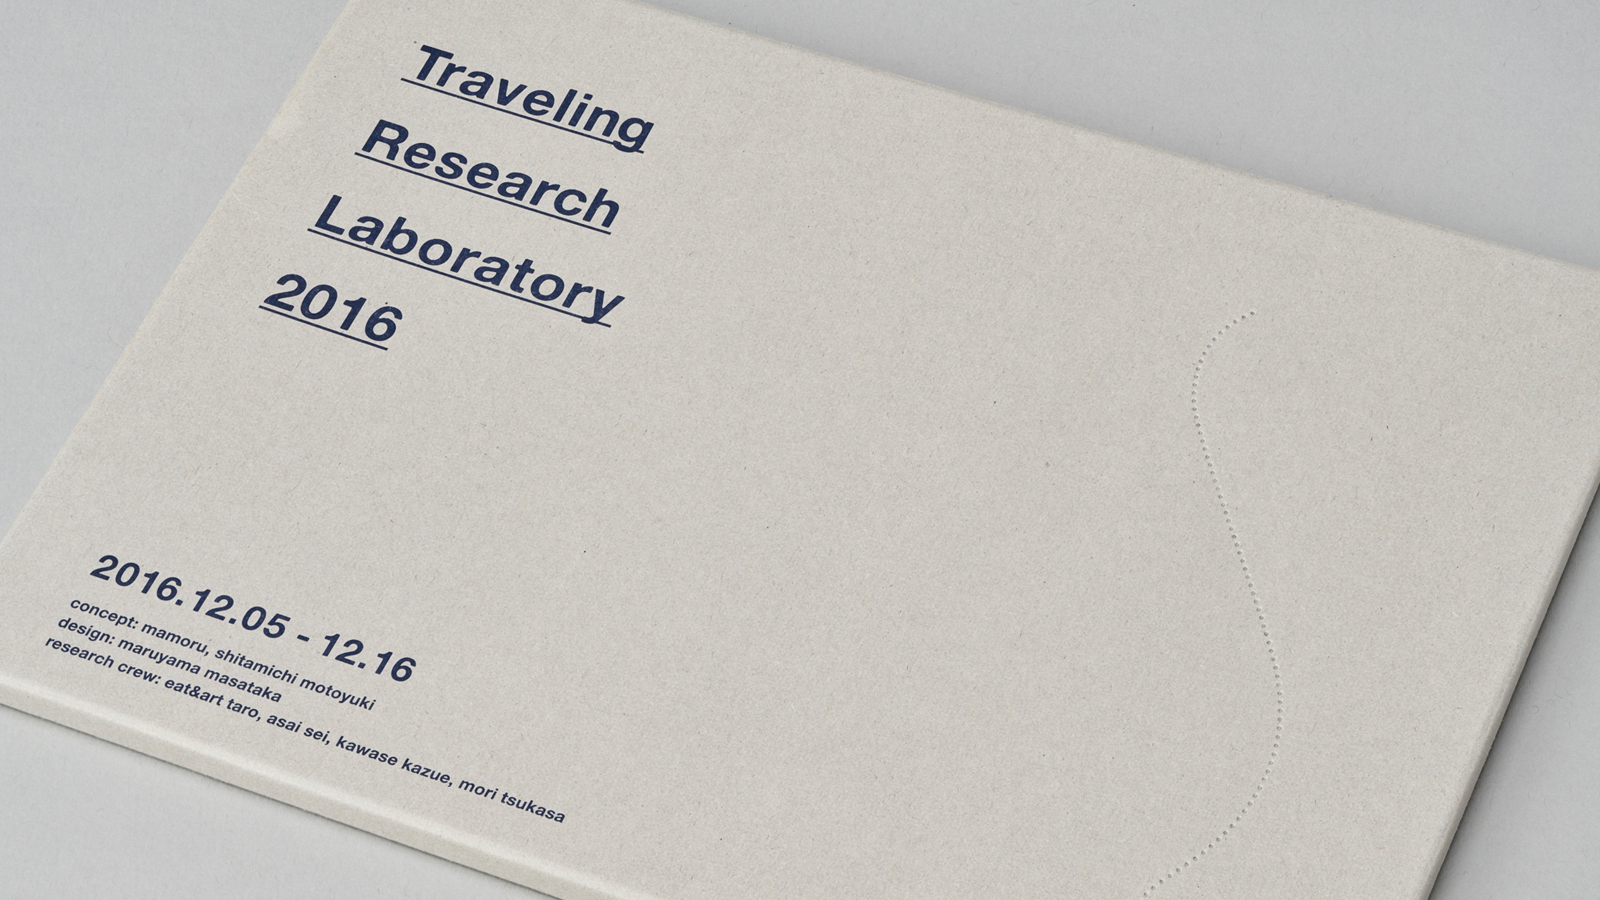 Traveling Research Labratory 2016